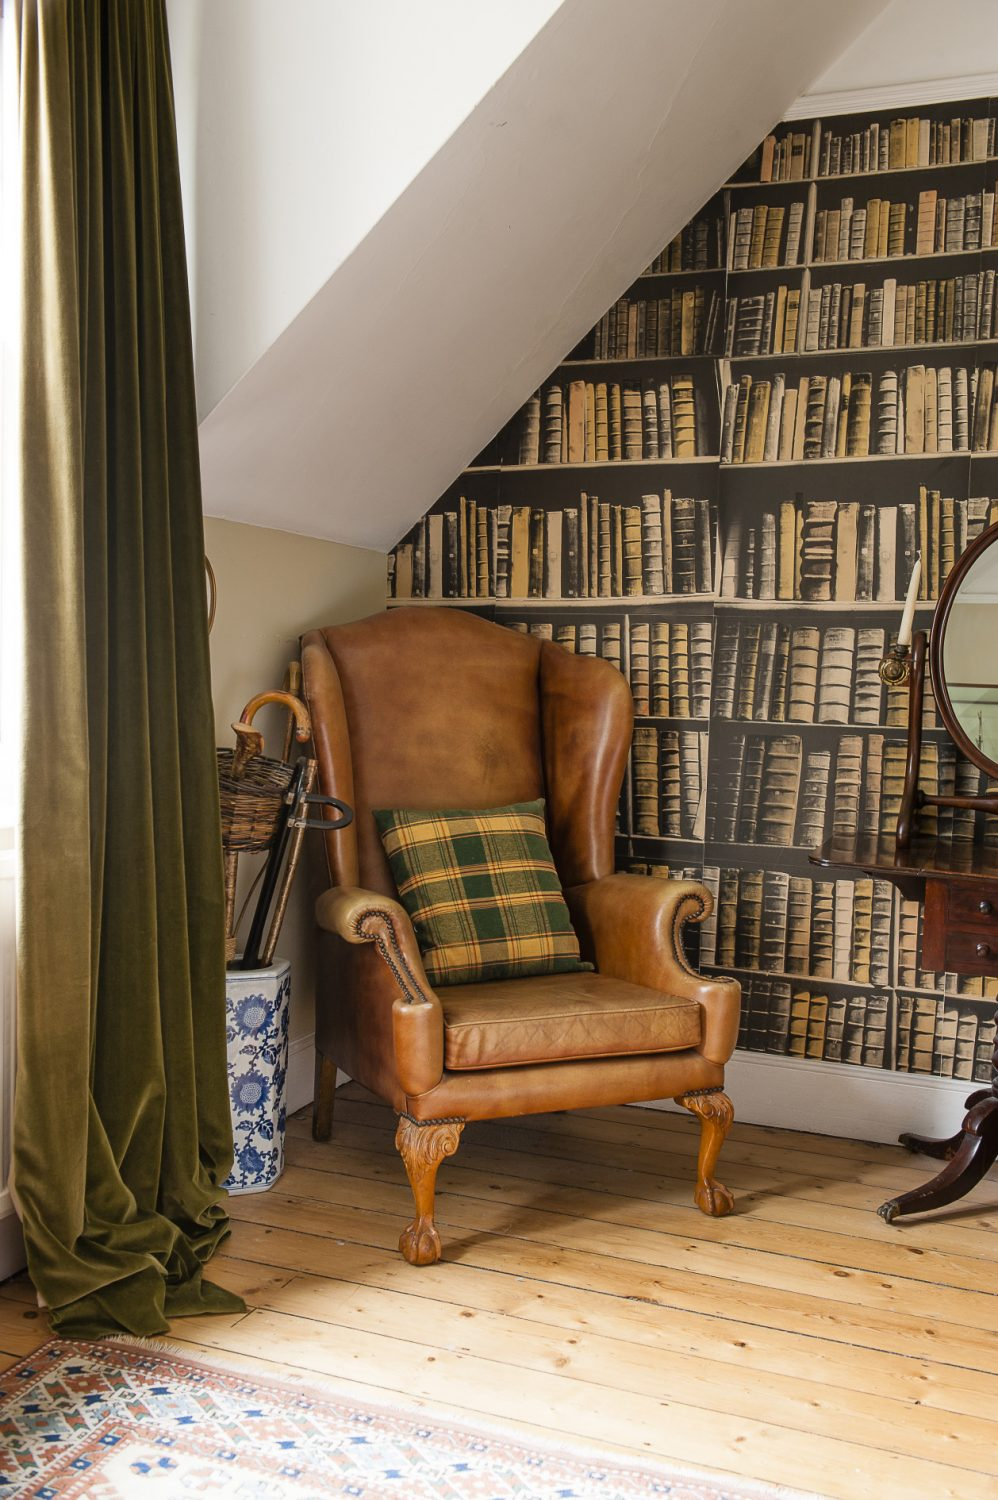 One upstairs bedroom has a complementary masculine feel, with the air of a gentleman's club in the leather chair, velvet curtains, horse painting and the 'New Antique Books' wallpaper by St Leonard-based wallpaper designer Deborah Bowness.